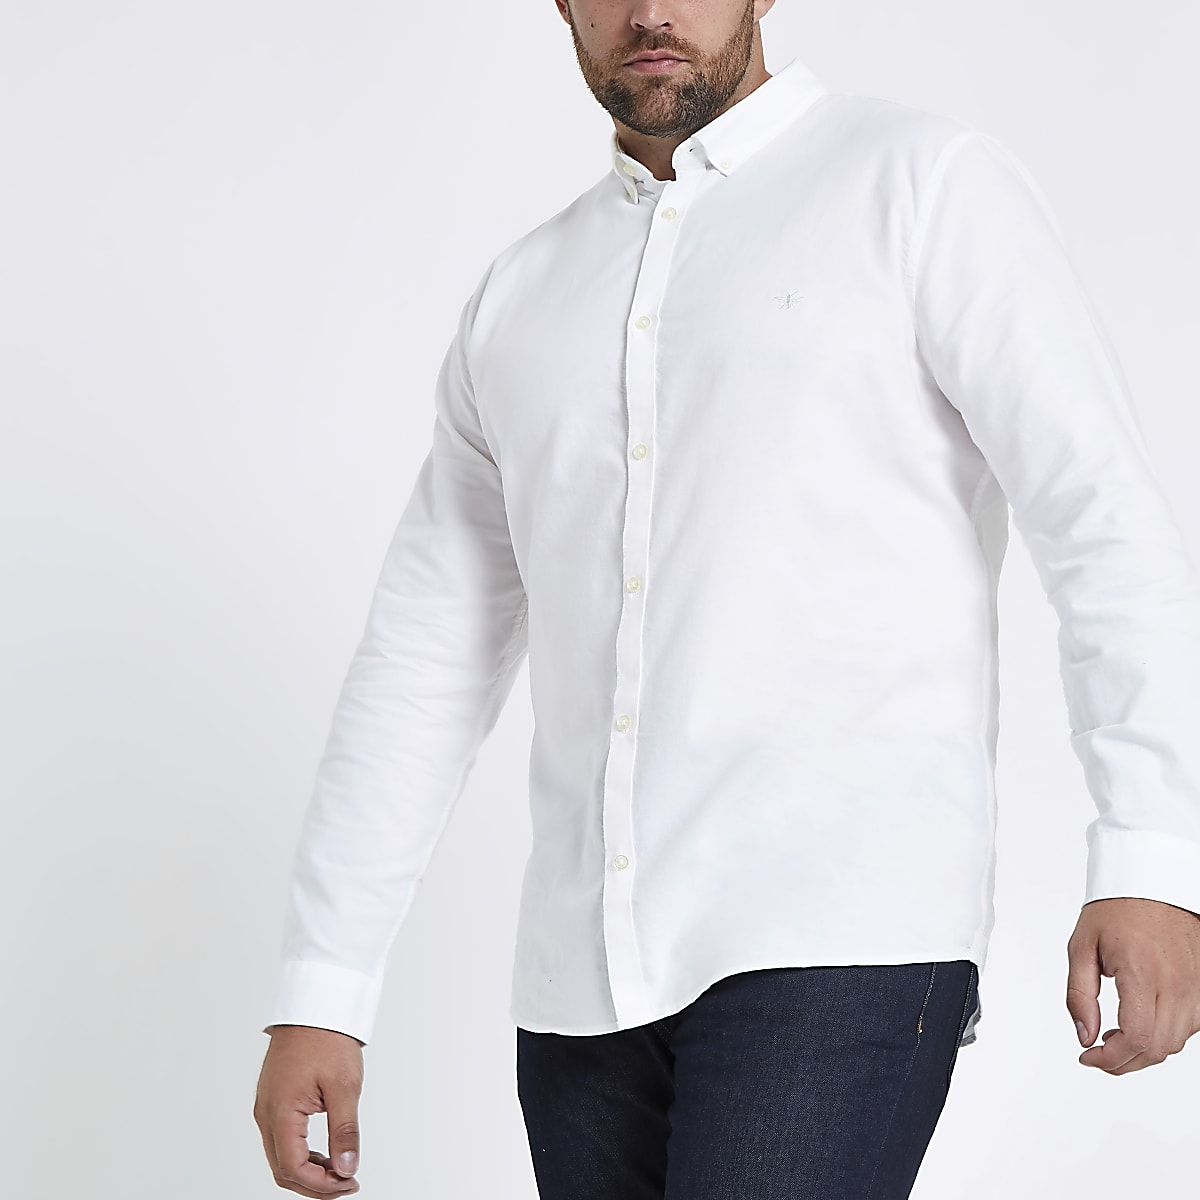 e1ac8584619703 Big and Tall white long sleeve Oxford shirt - Long Sleeve Shirts - Shirts -  men